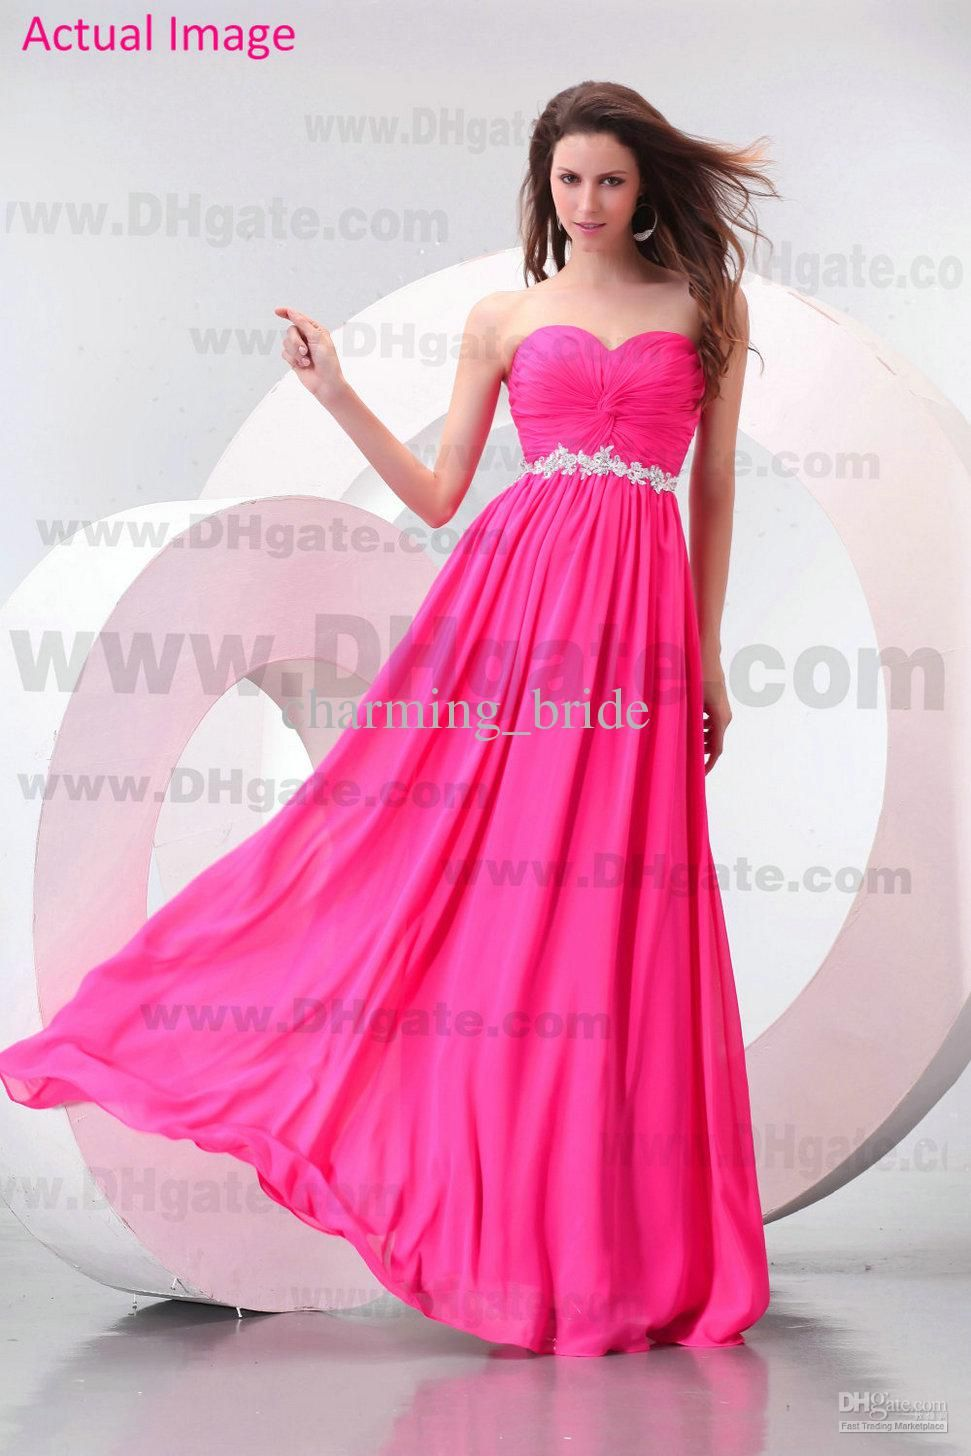 hot pink bridesmaid dresses - Google Search | dresses | Pinterest